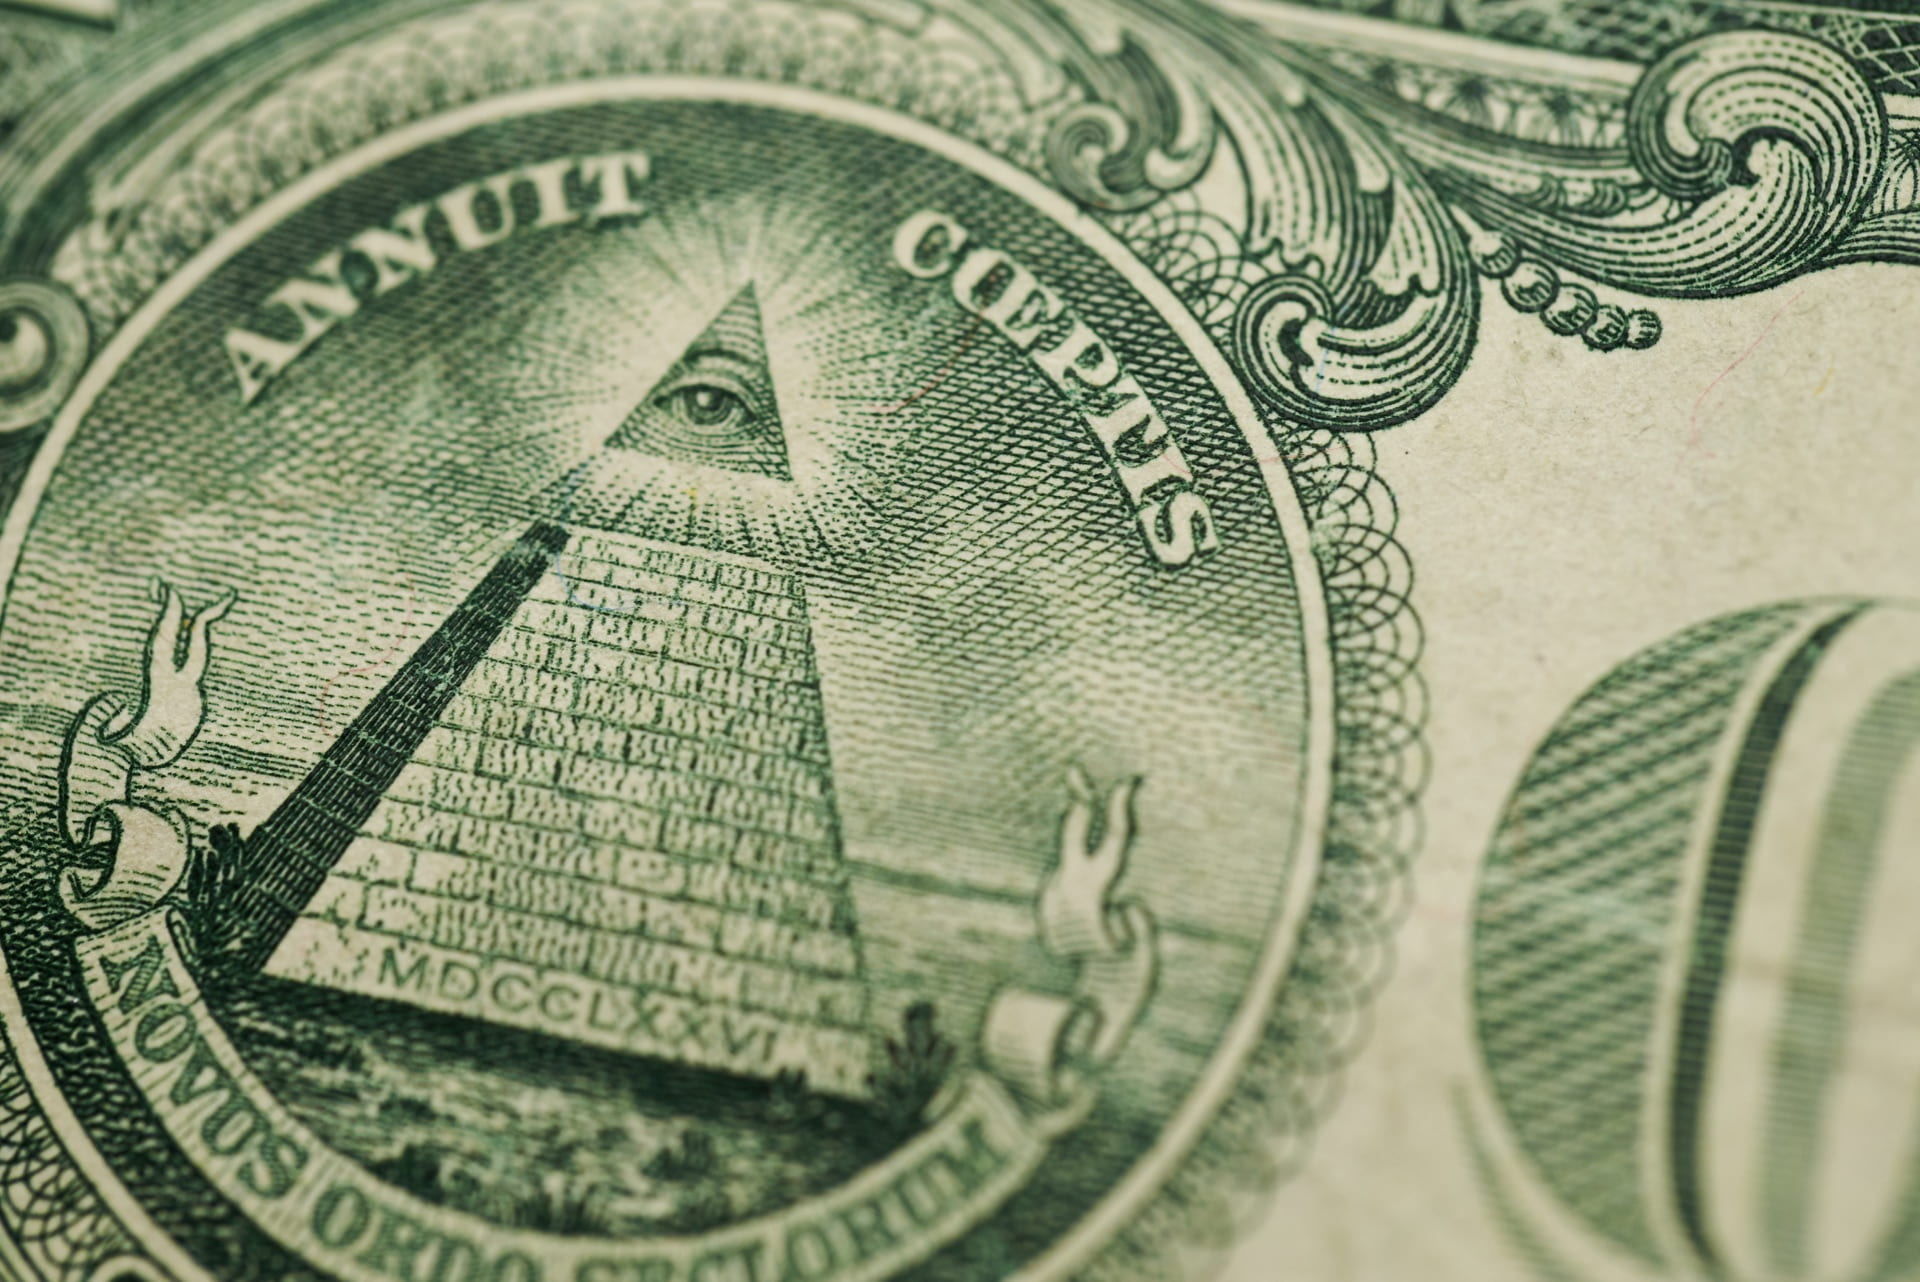 Photo of the pyramid and eye from on the back of US currency